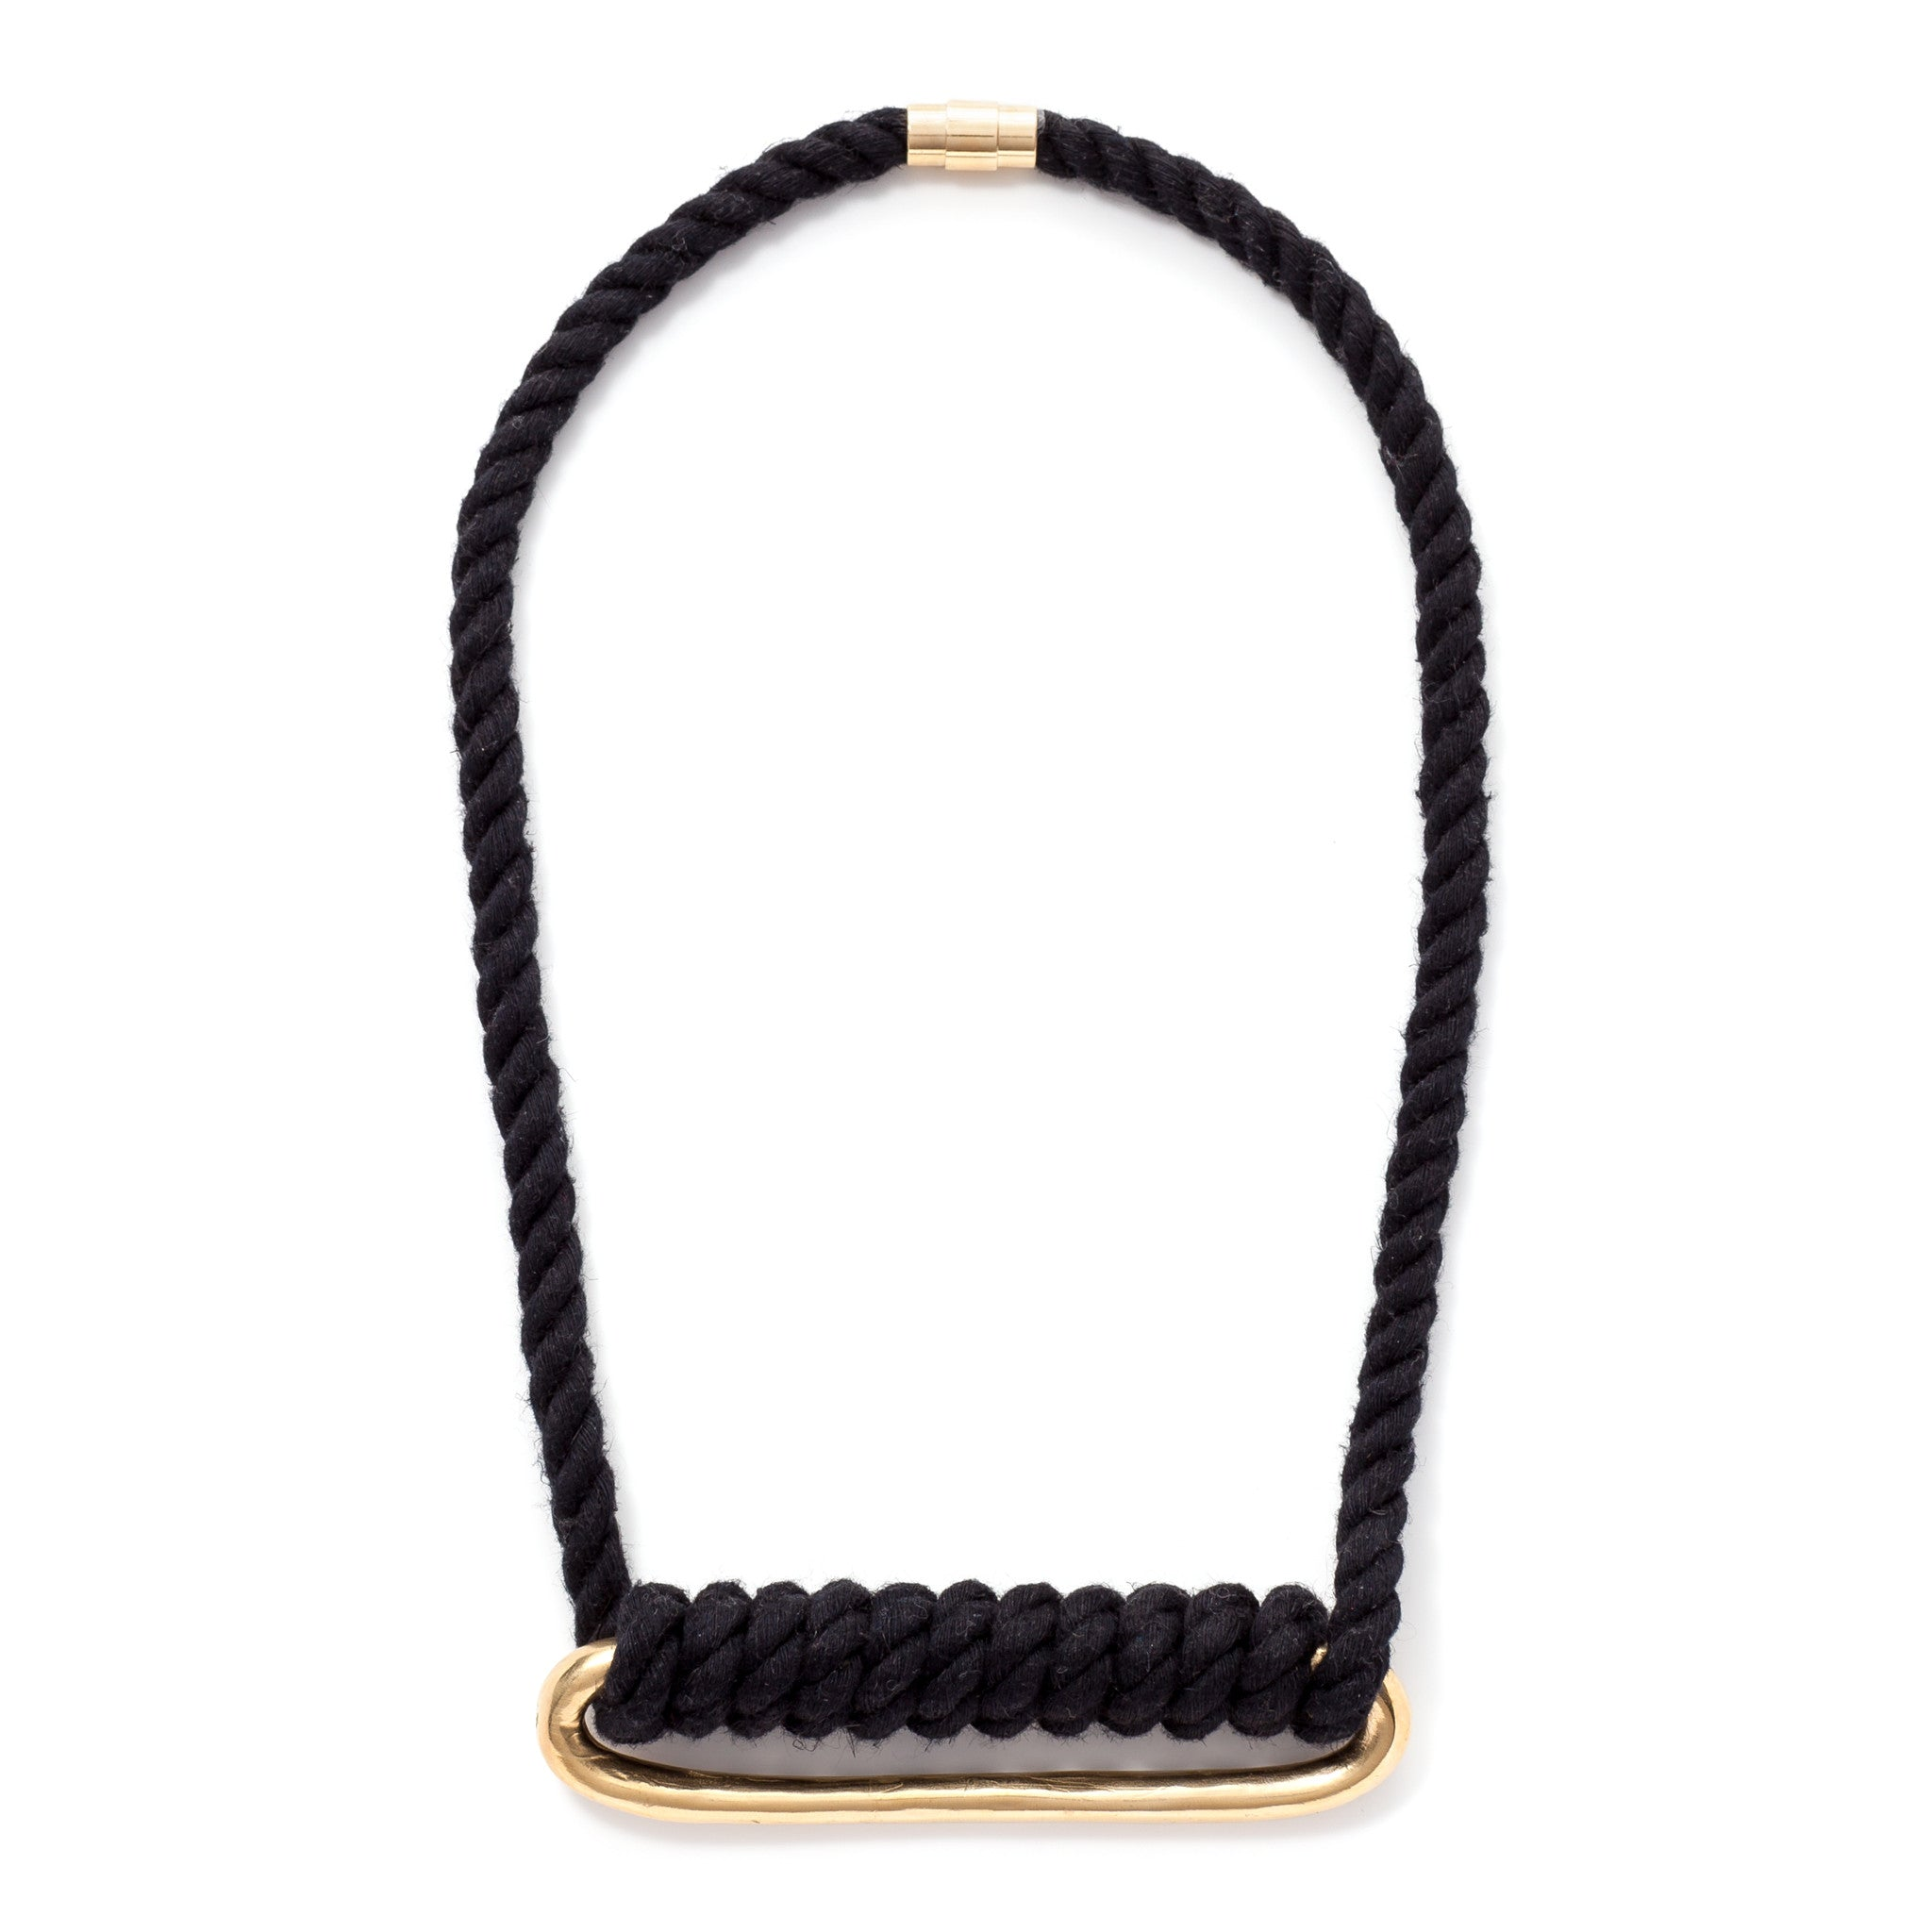 design brass vivid modern jewelry venus edgy tube geometric necklace product